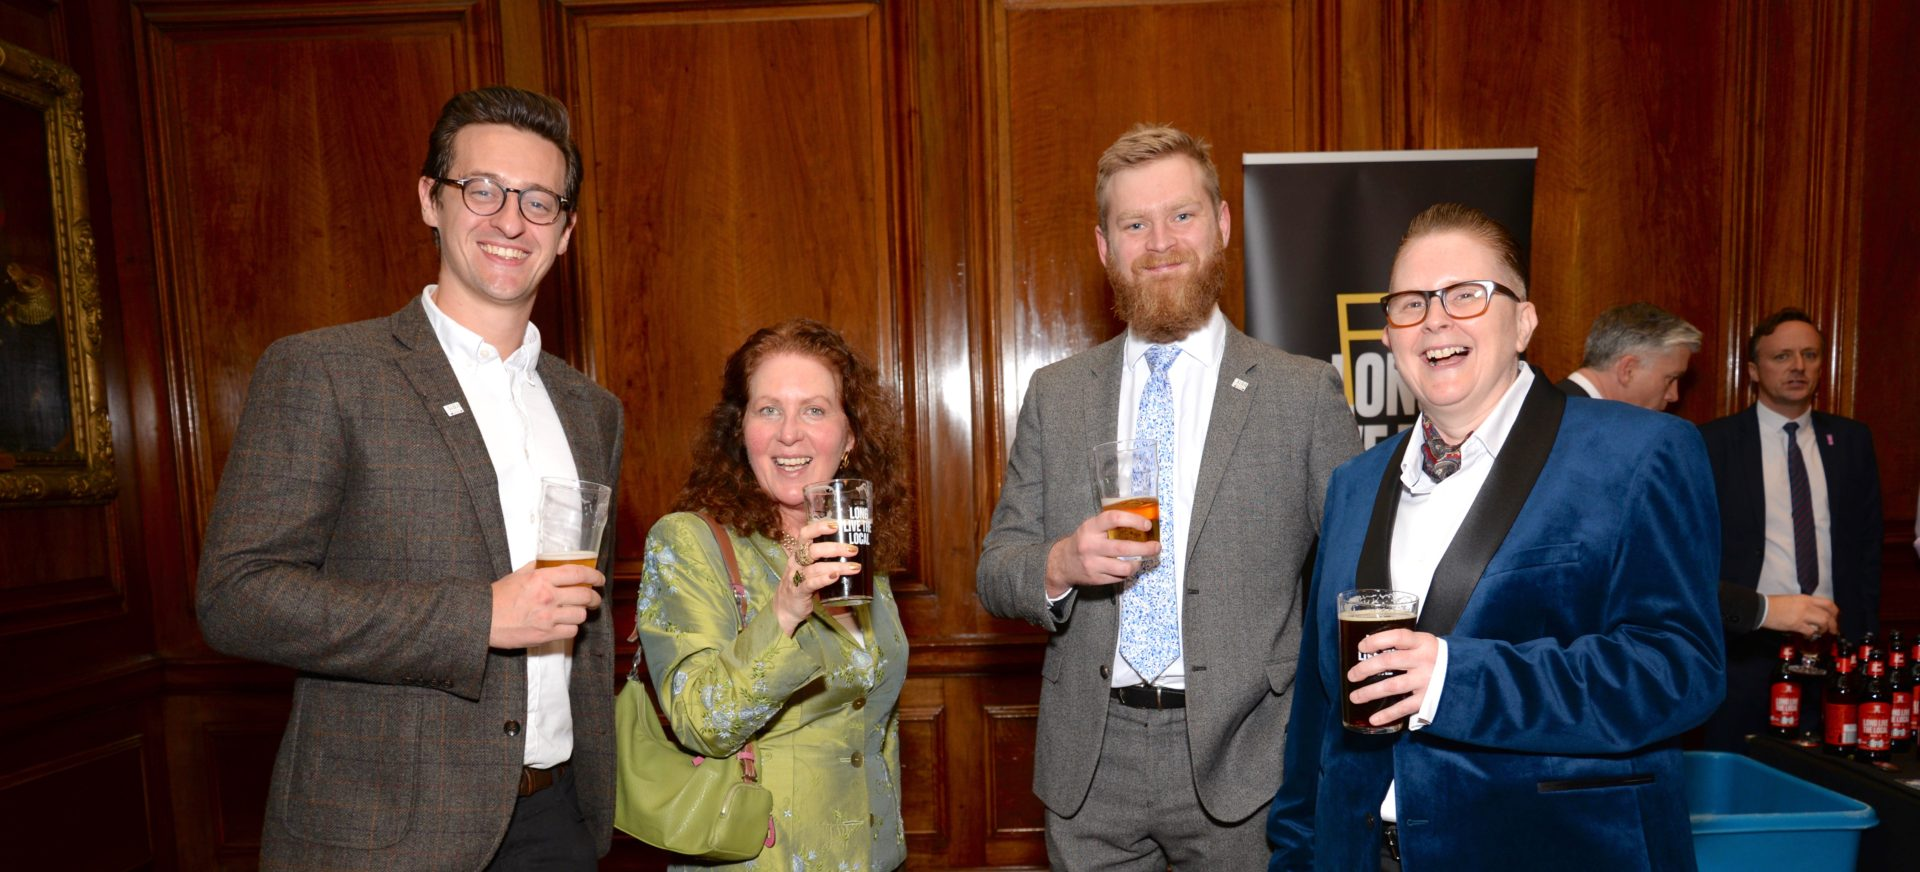 The British Guild of Beer Writers header image